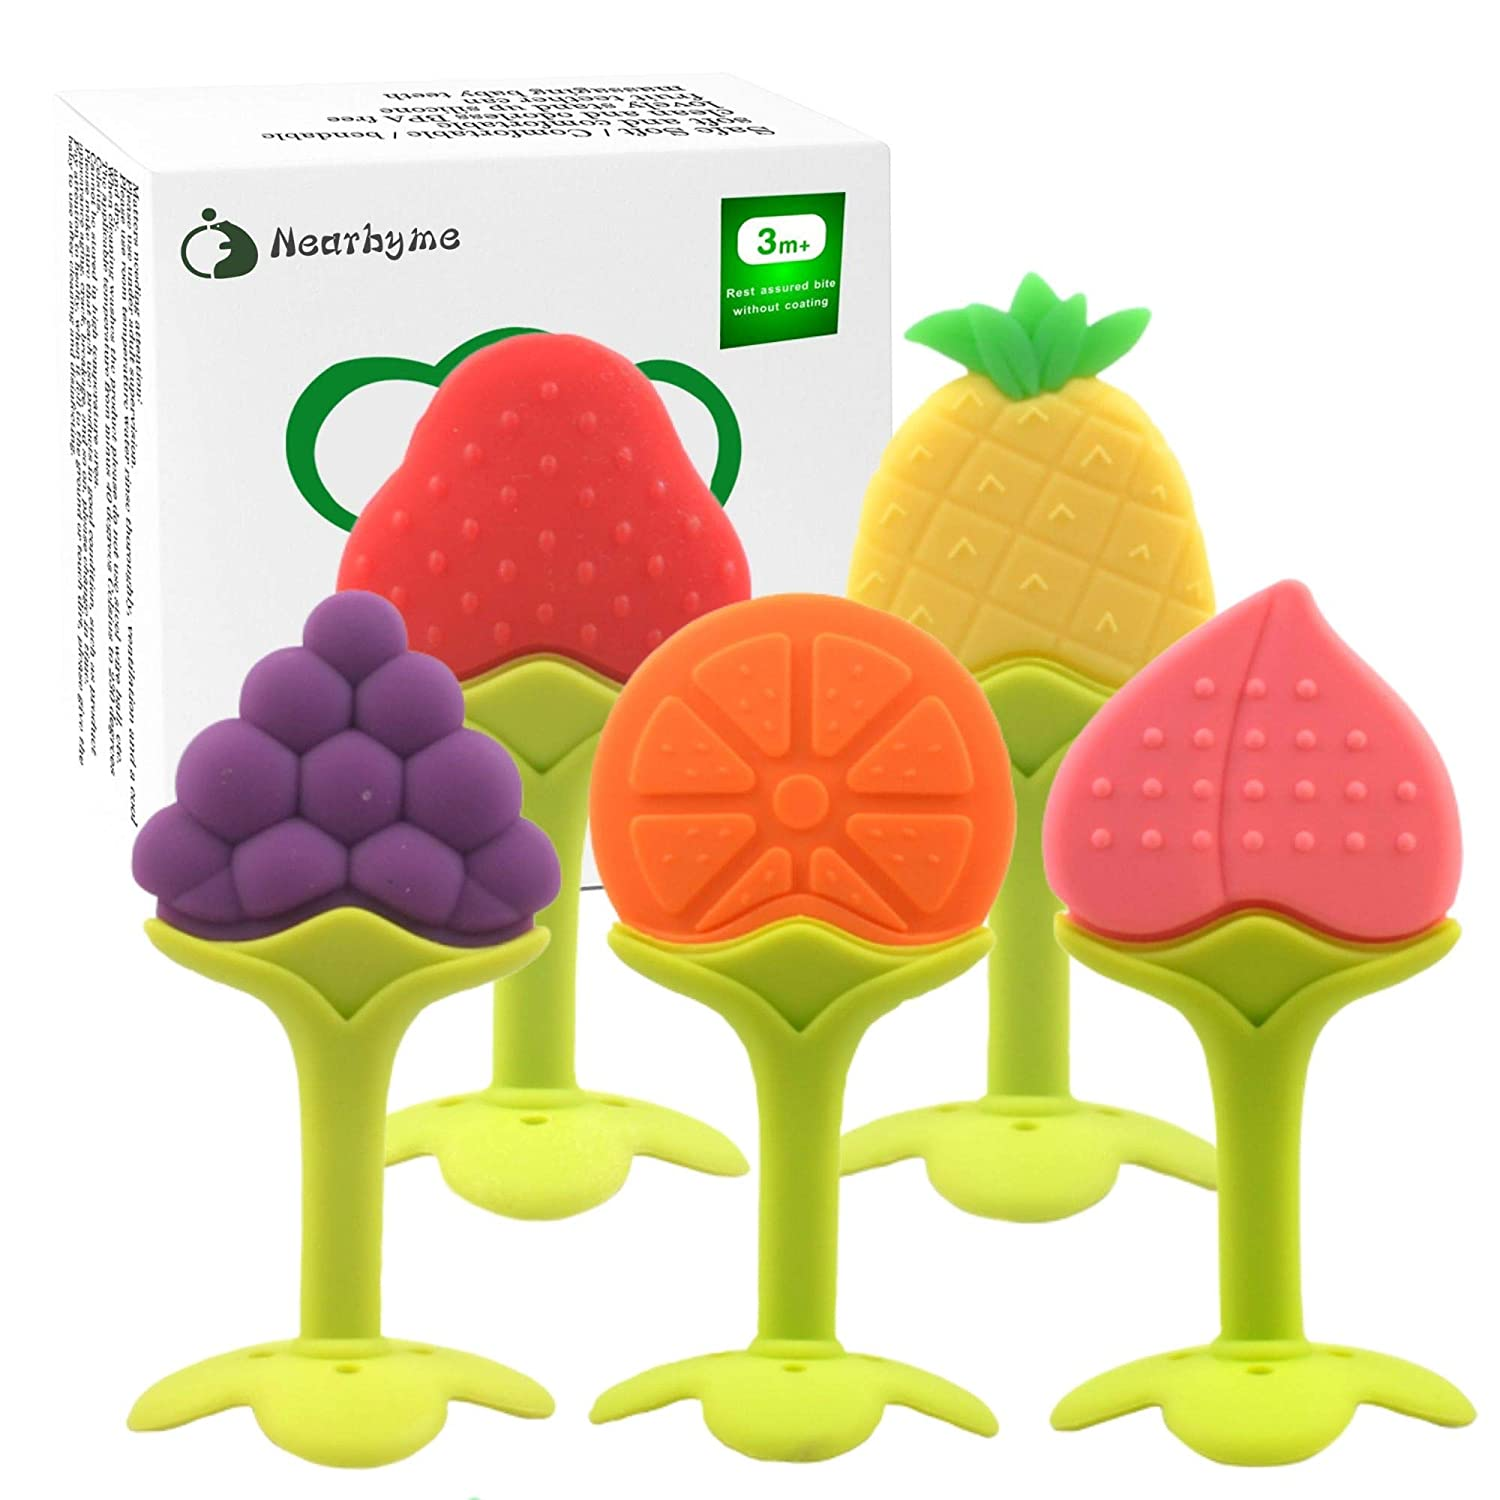 Nearbyme Baby Teething Toys, Soft Silicone Fruit Teether Set with Pacifier Clip / Holder for Toddlers & Infants, 5 Pack